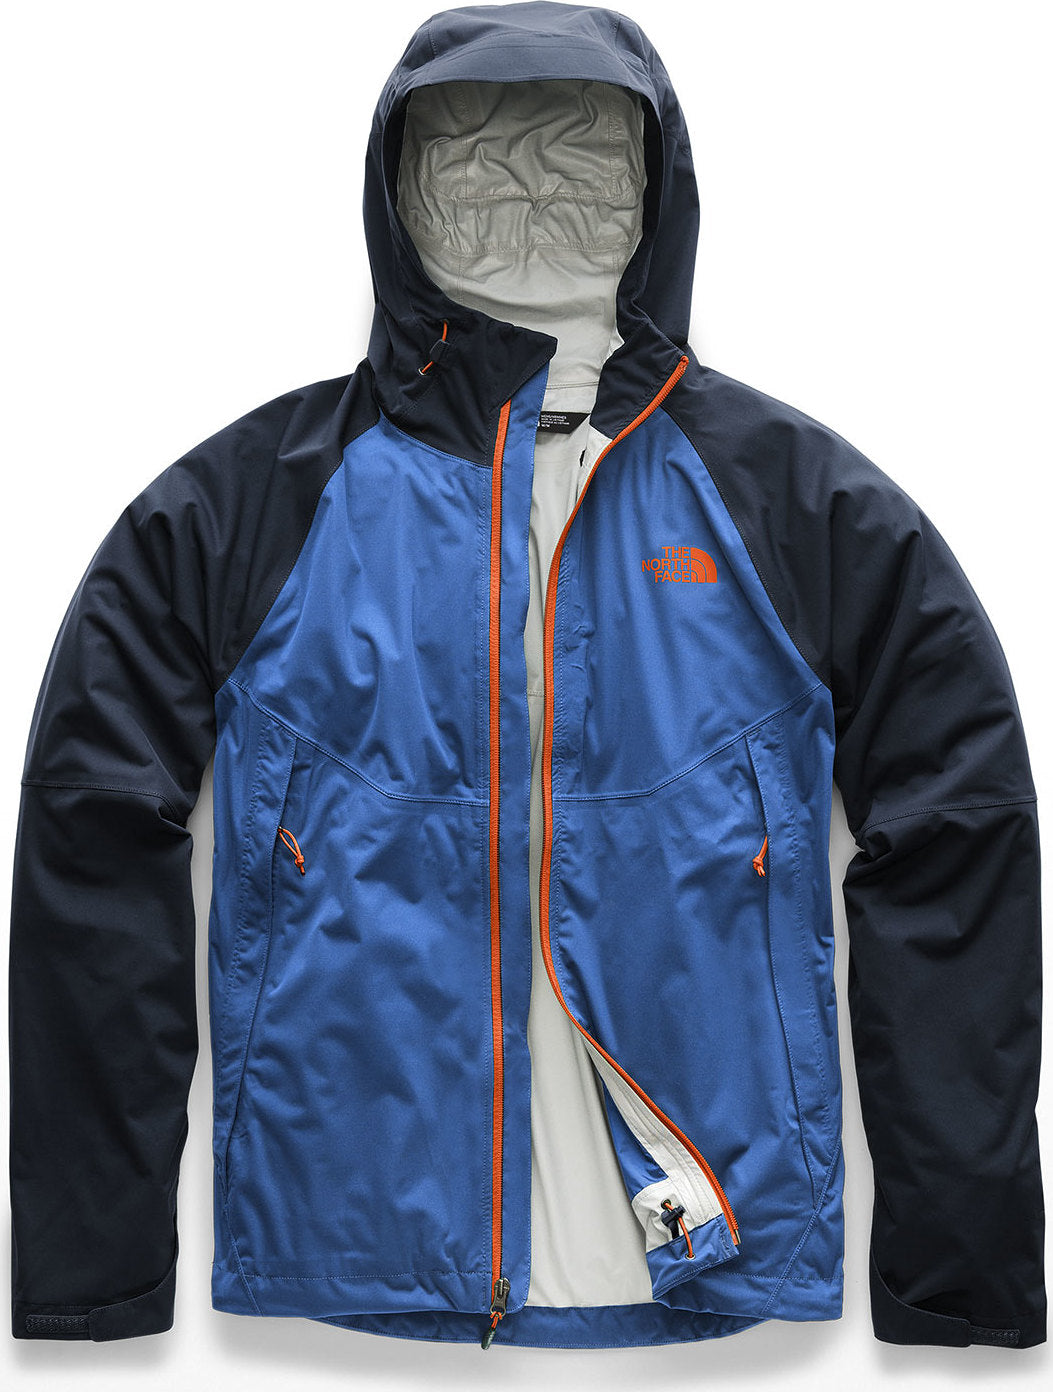 ddc2b8235 The North Face Men s Allproof Stretch Jacket